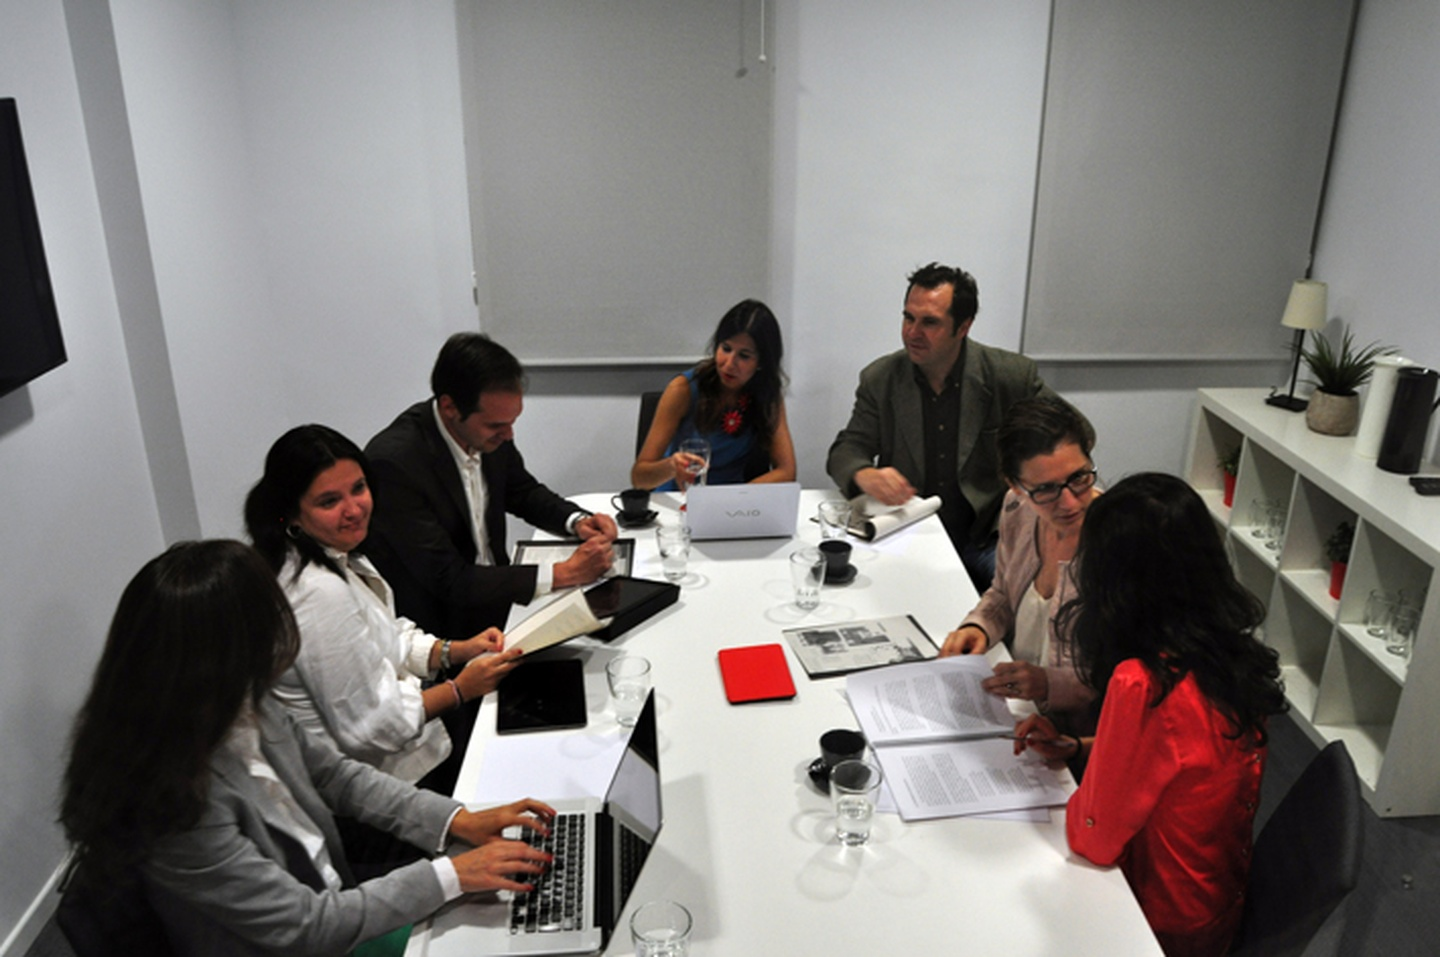 Madrid conference rooms Coworking space WorkLab-Callao Business Centre image 2